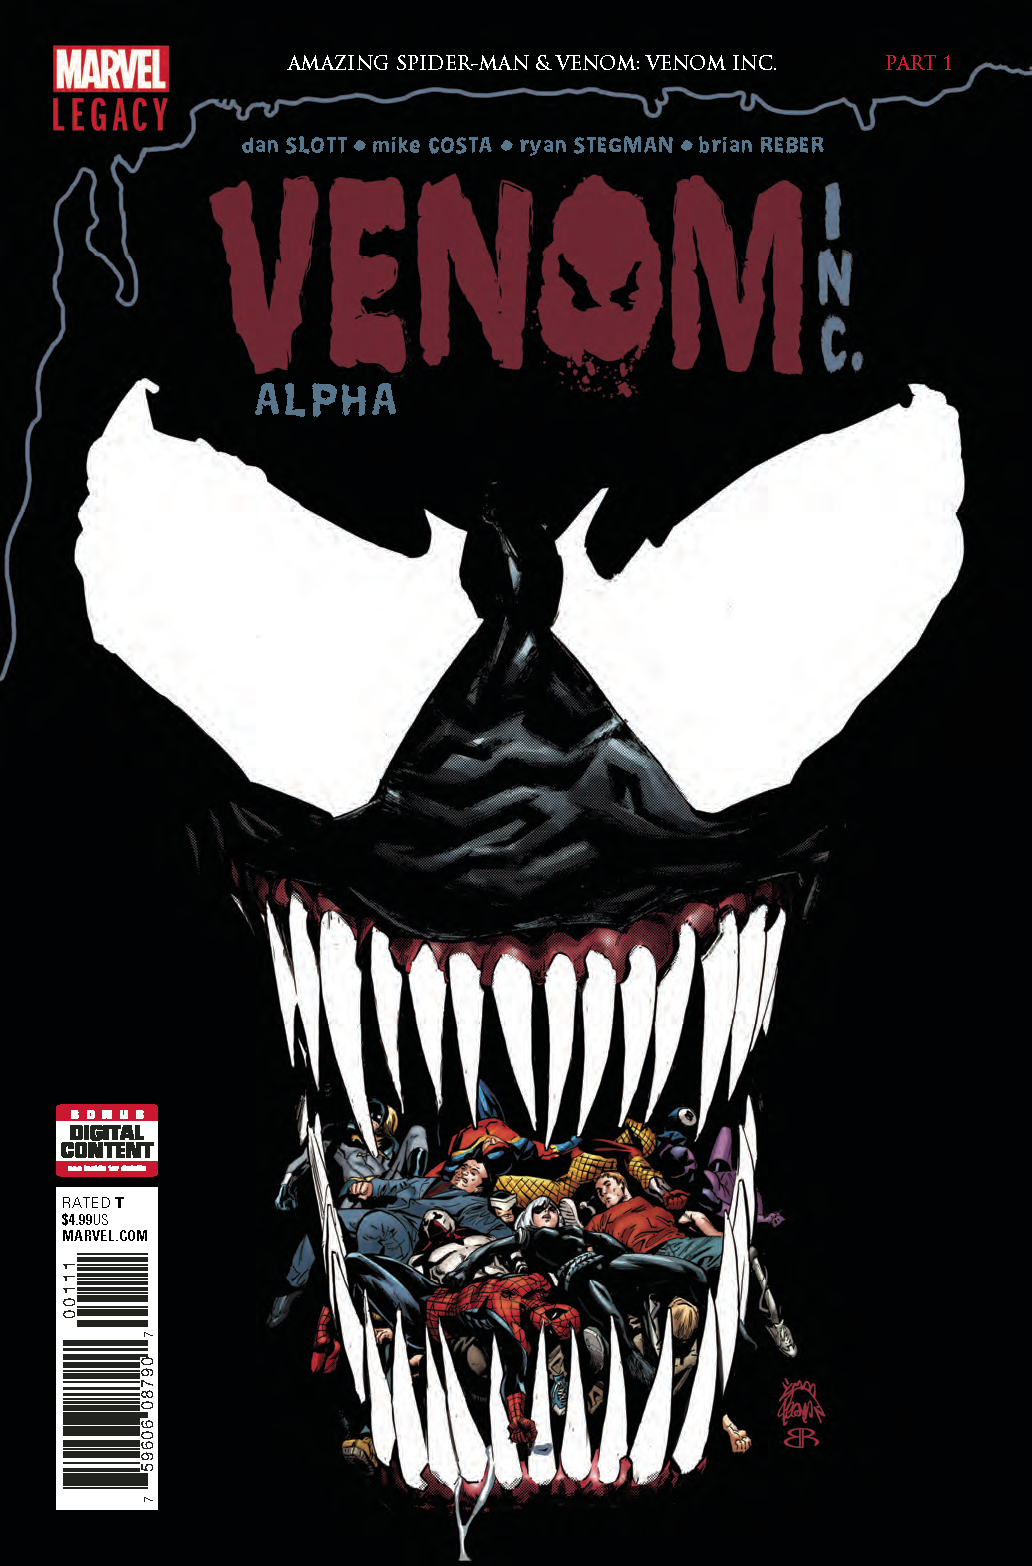 AMAZING SPIDER-MAN VENOM INC ALPHA #1